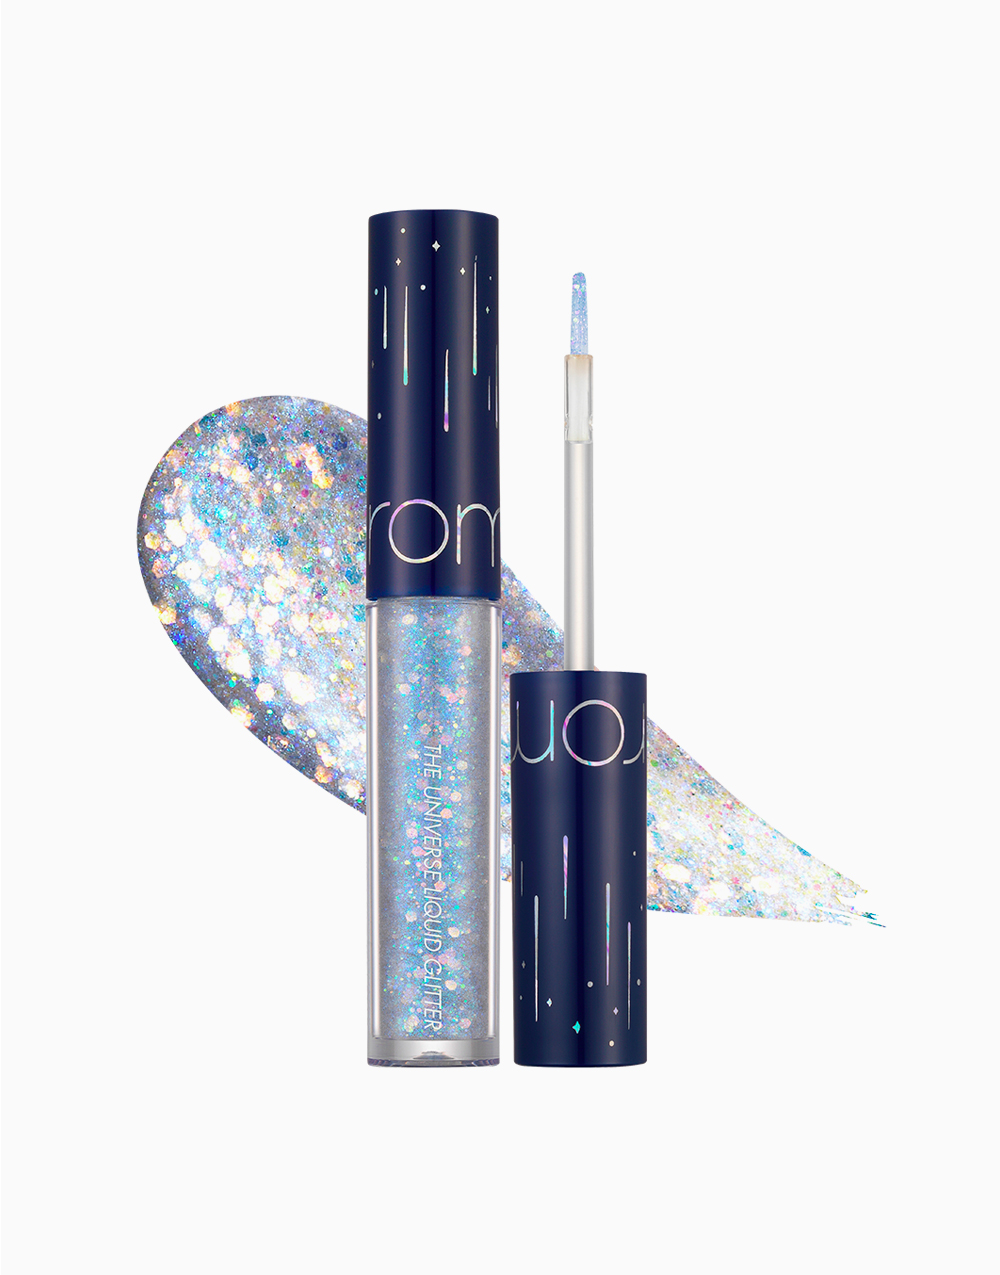 The Universe Liquid Glitter Shadow by Rom&nd | 04 Frozen Star